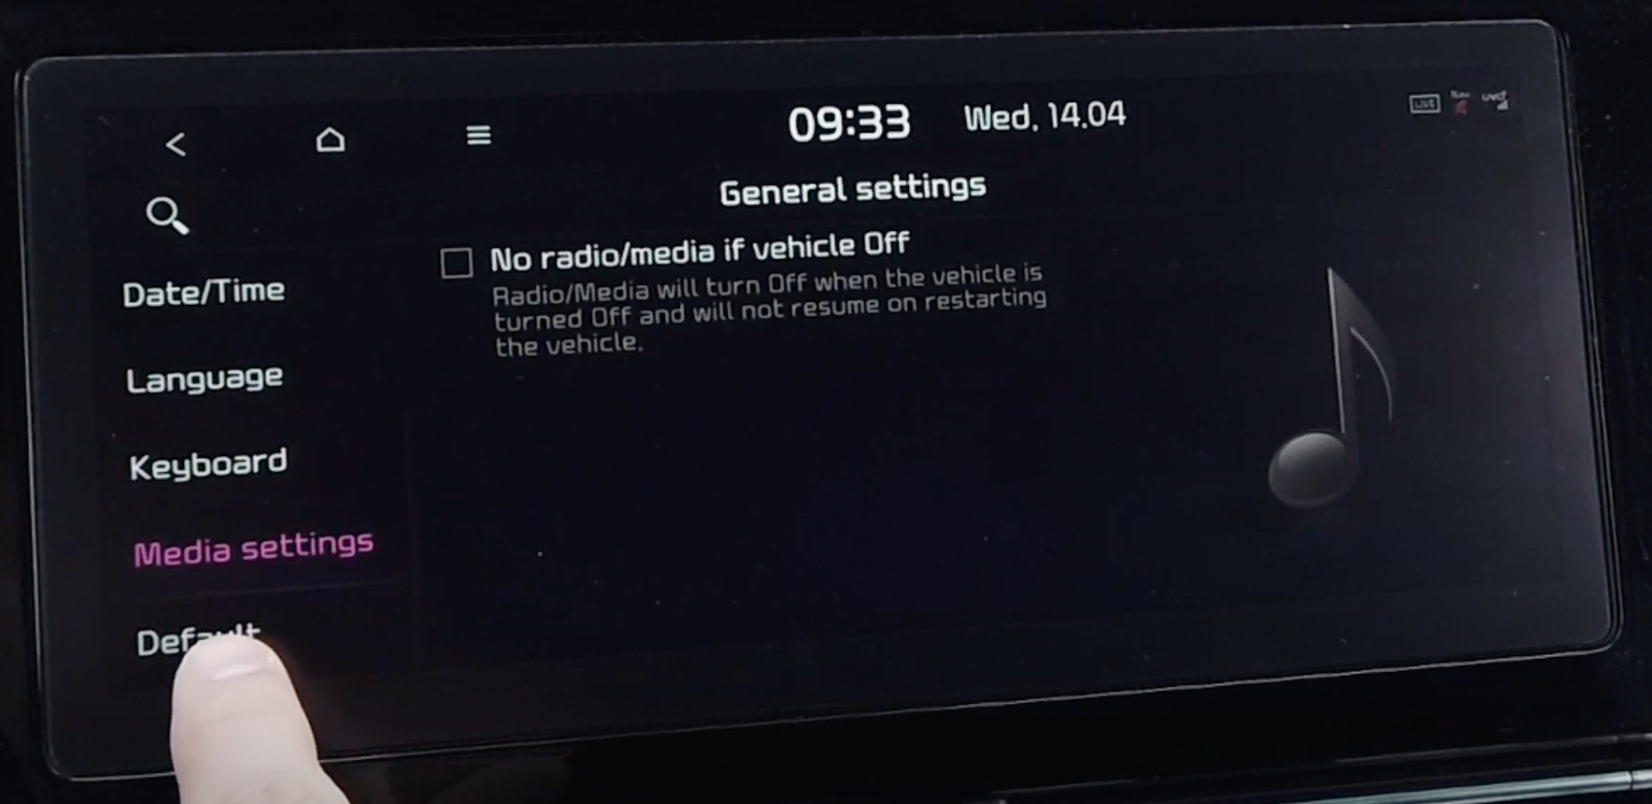 Turning on and off the feature to automatically turn media off when vehicle is off